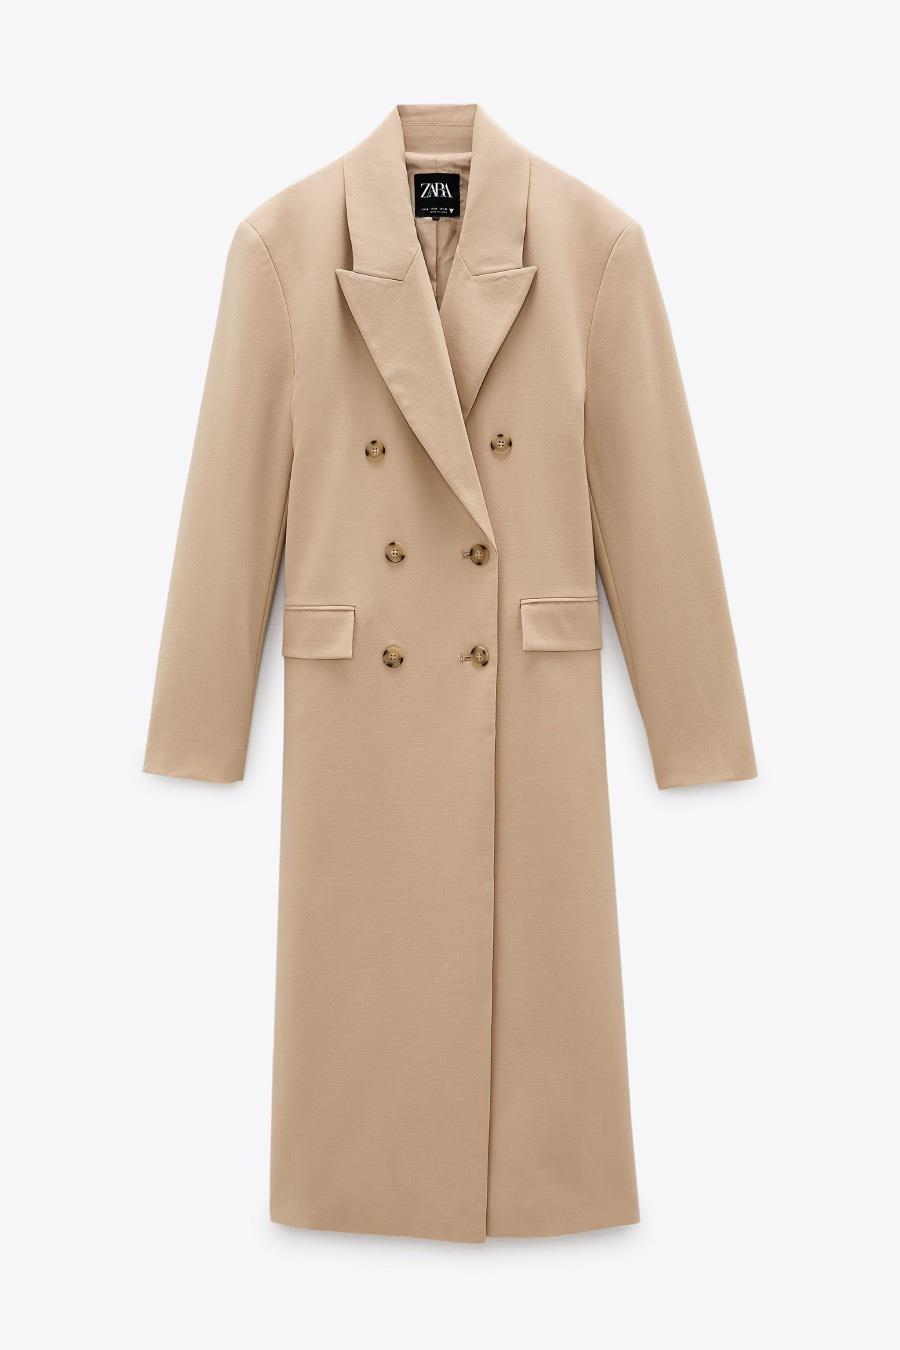 María Pombo and the perfect men's coat of the season (we have a clone)